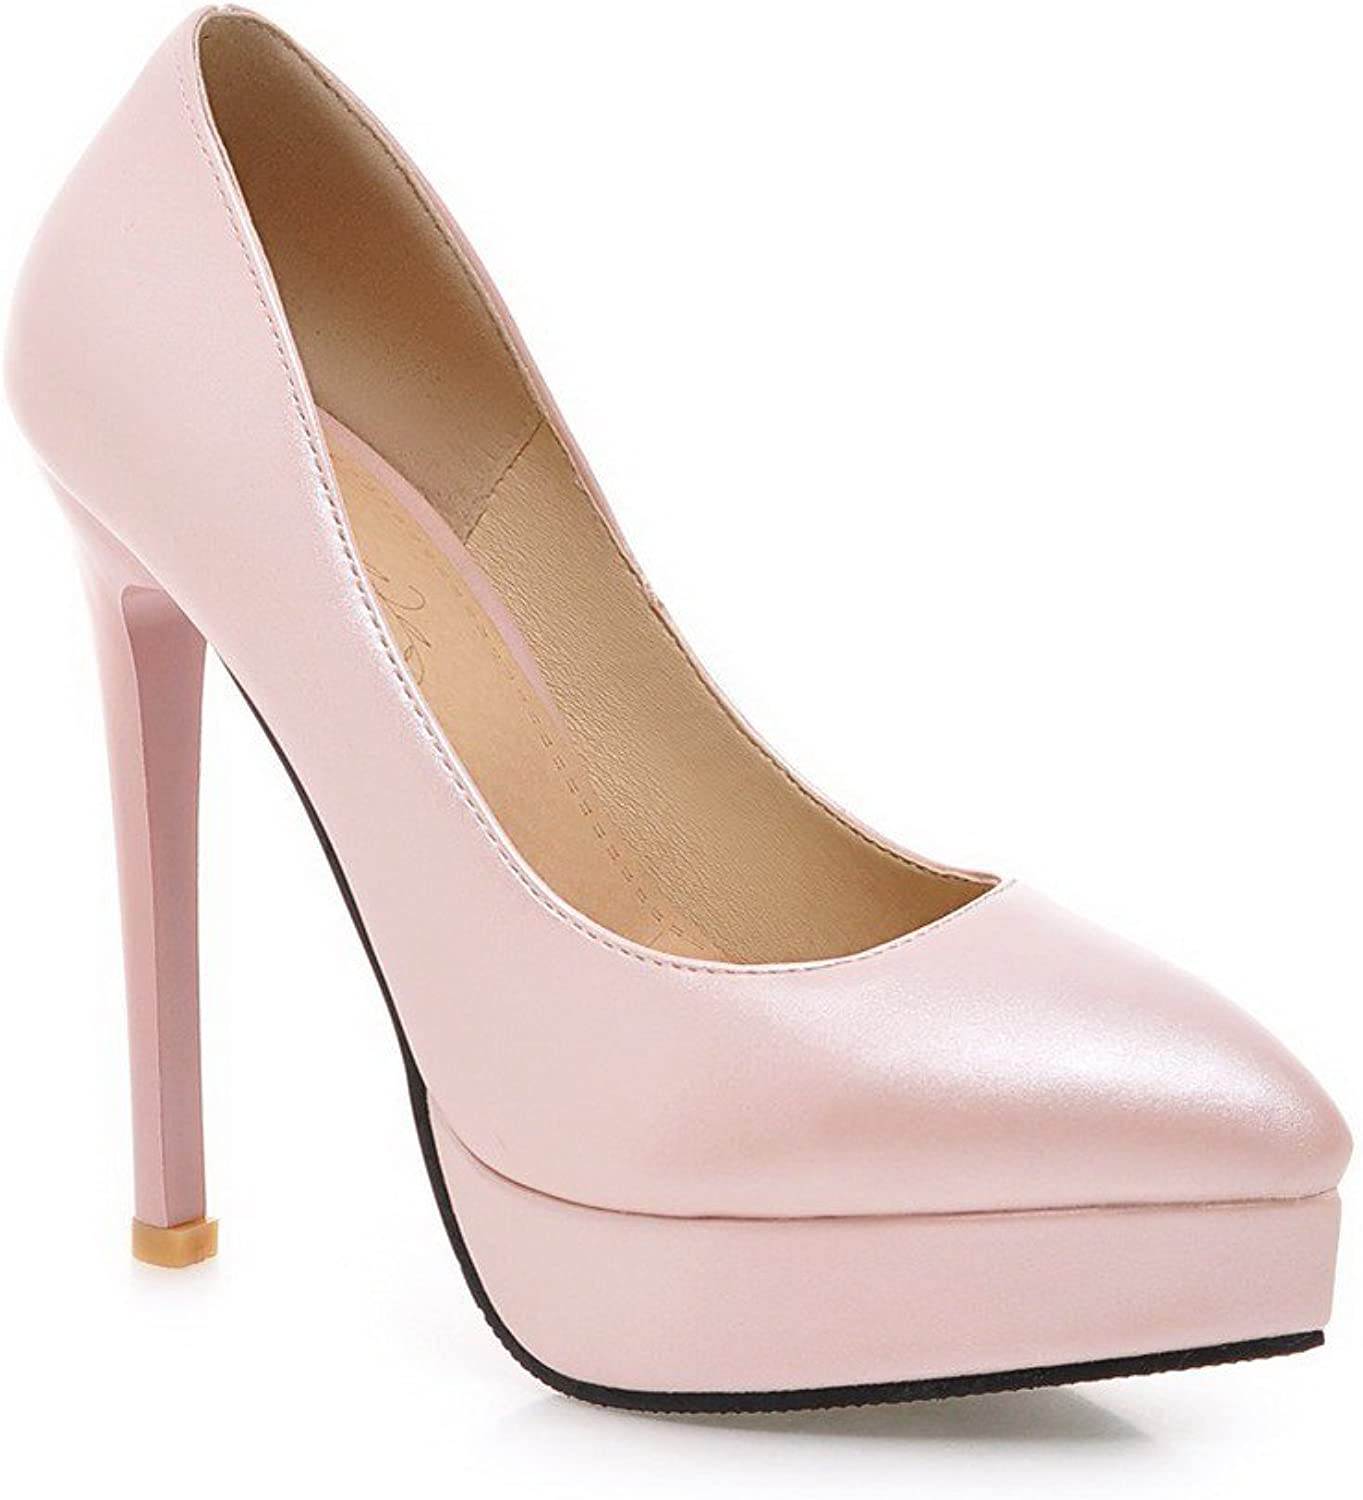 WeenFashion Women's Pointed Closed Toe High-Heels Soft Material Solid Pull-on Pumps-shoes